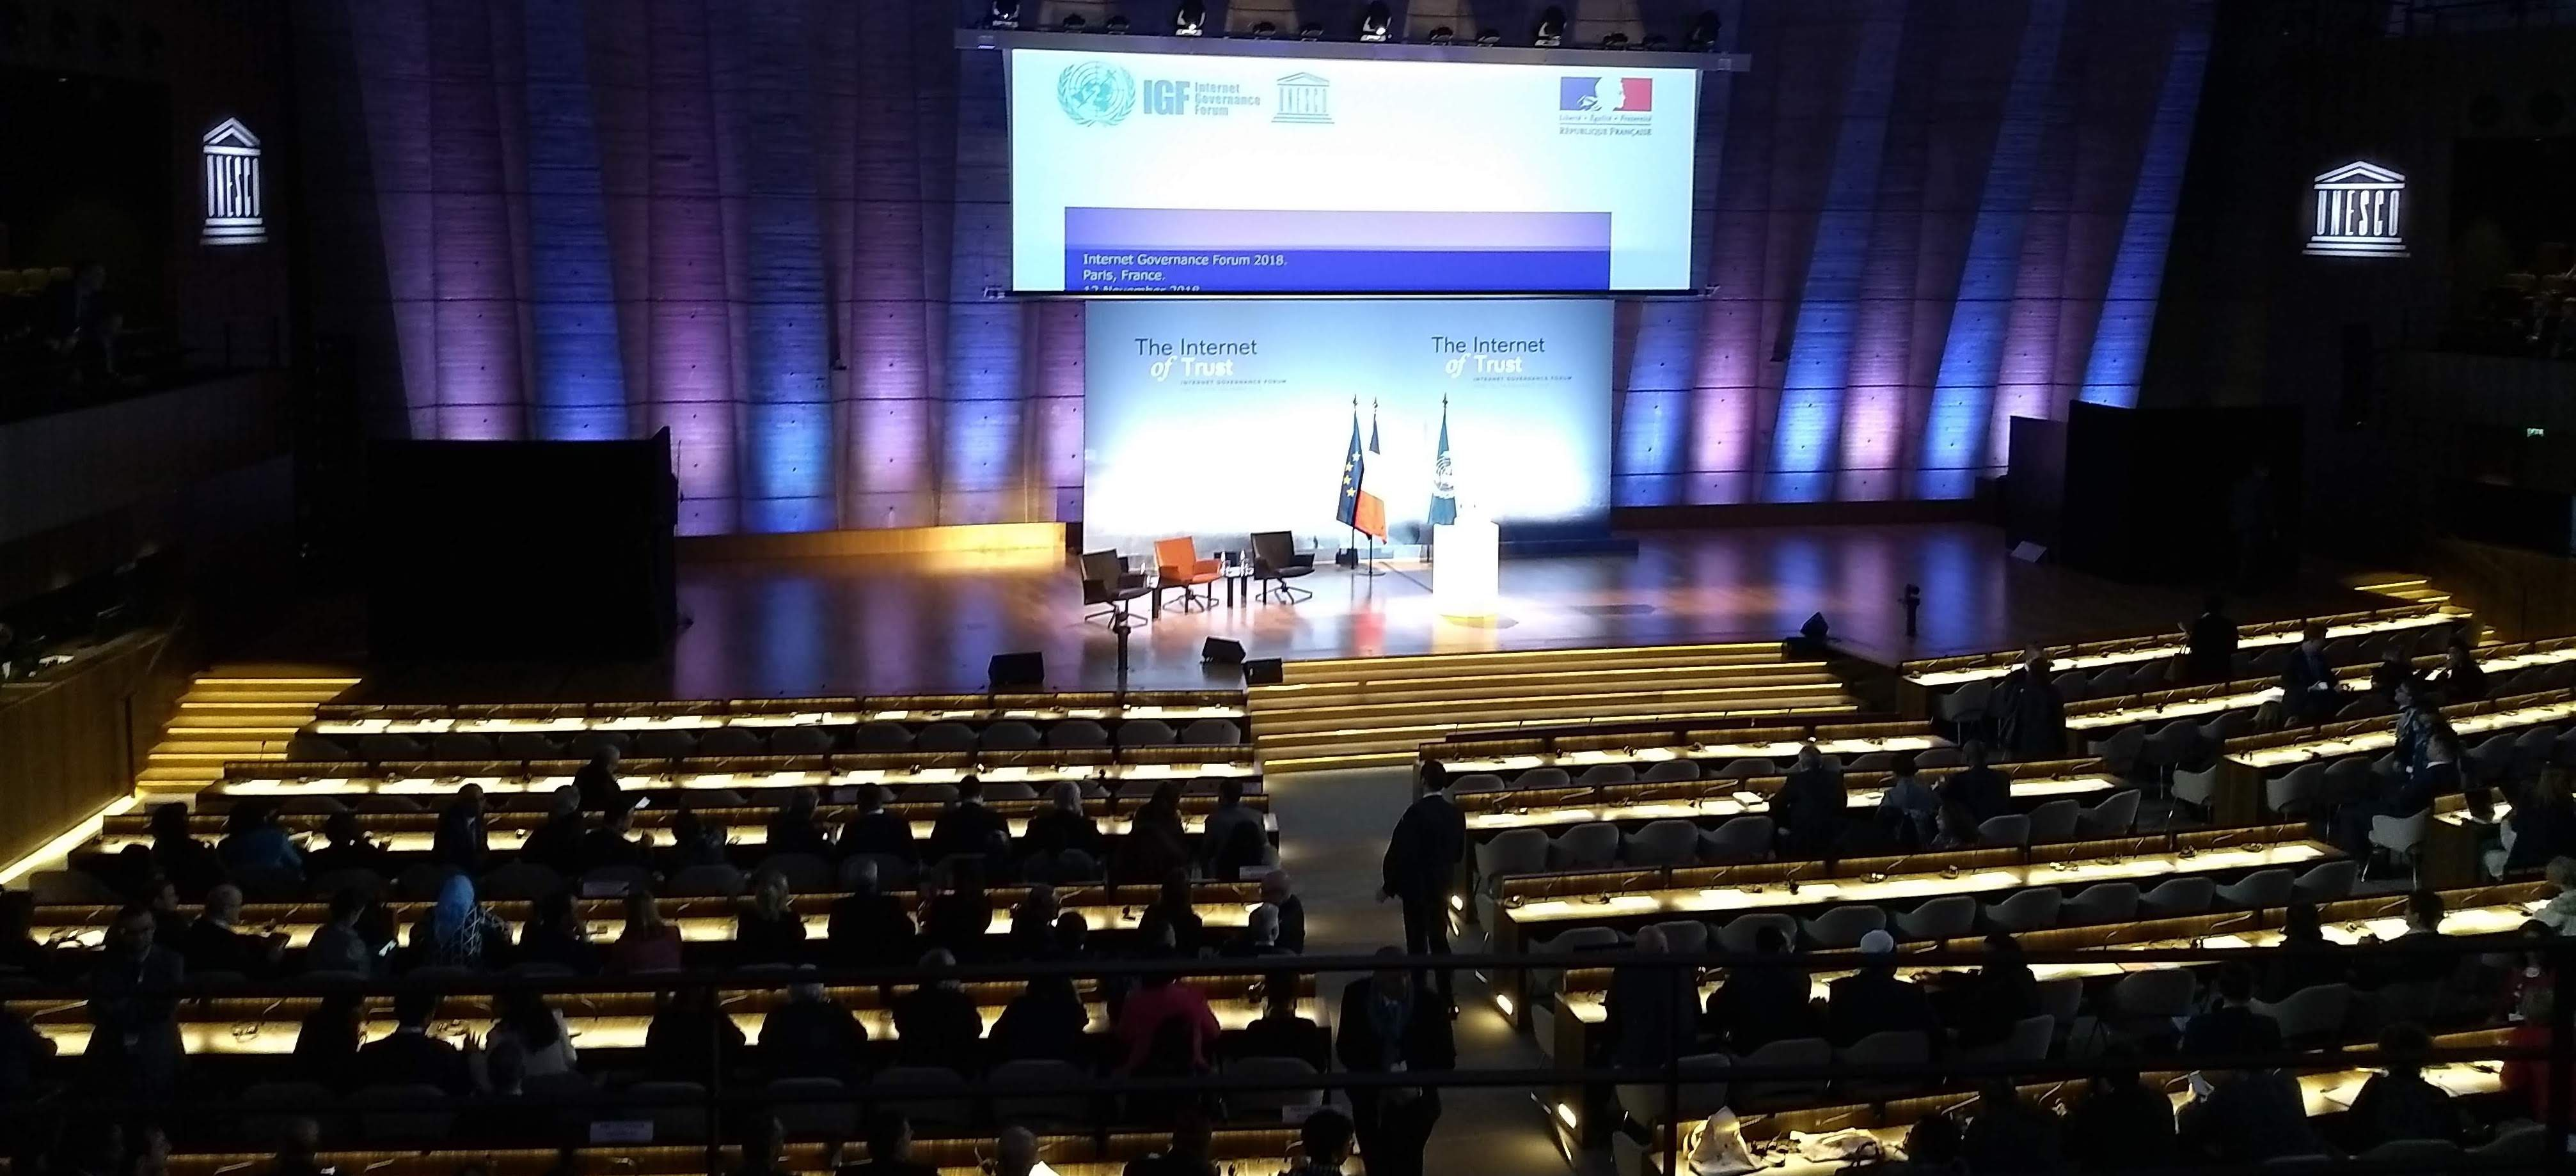 IGF 2018 Plenary Session